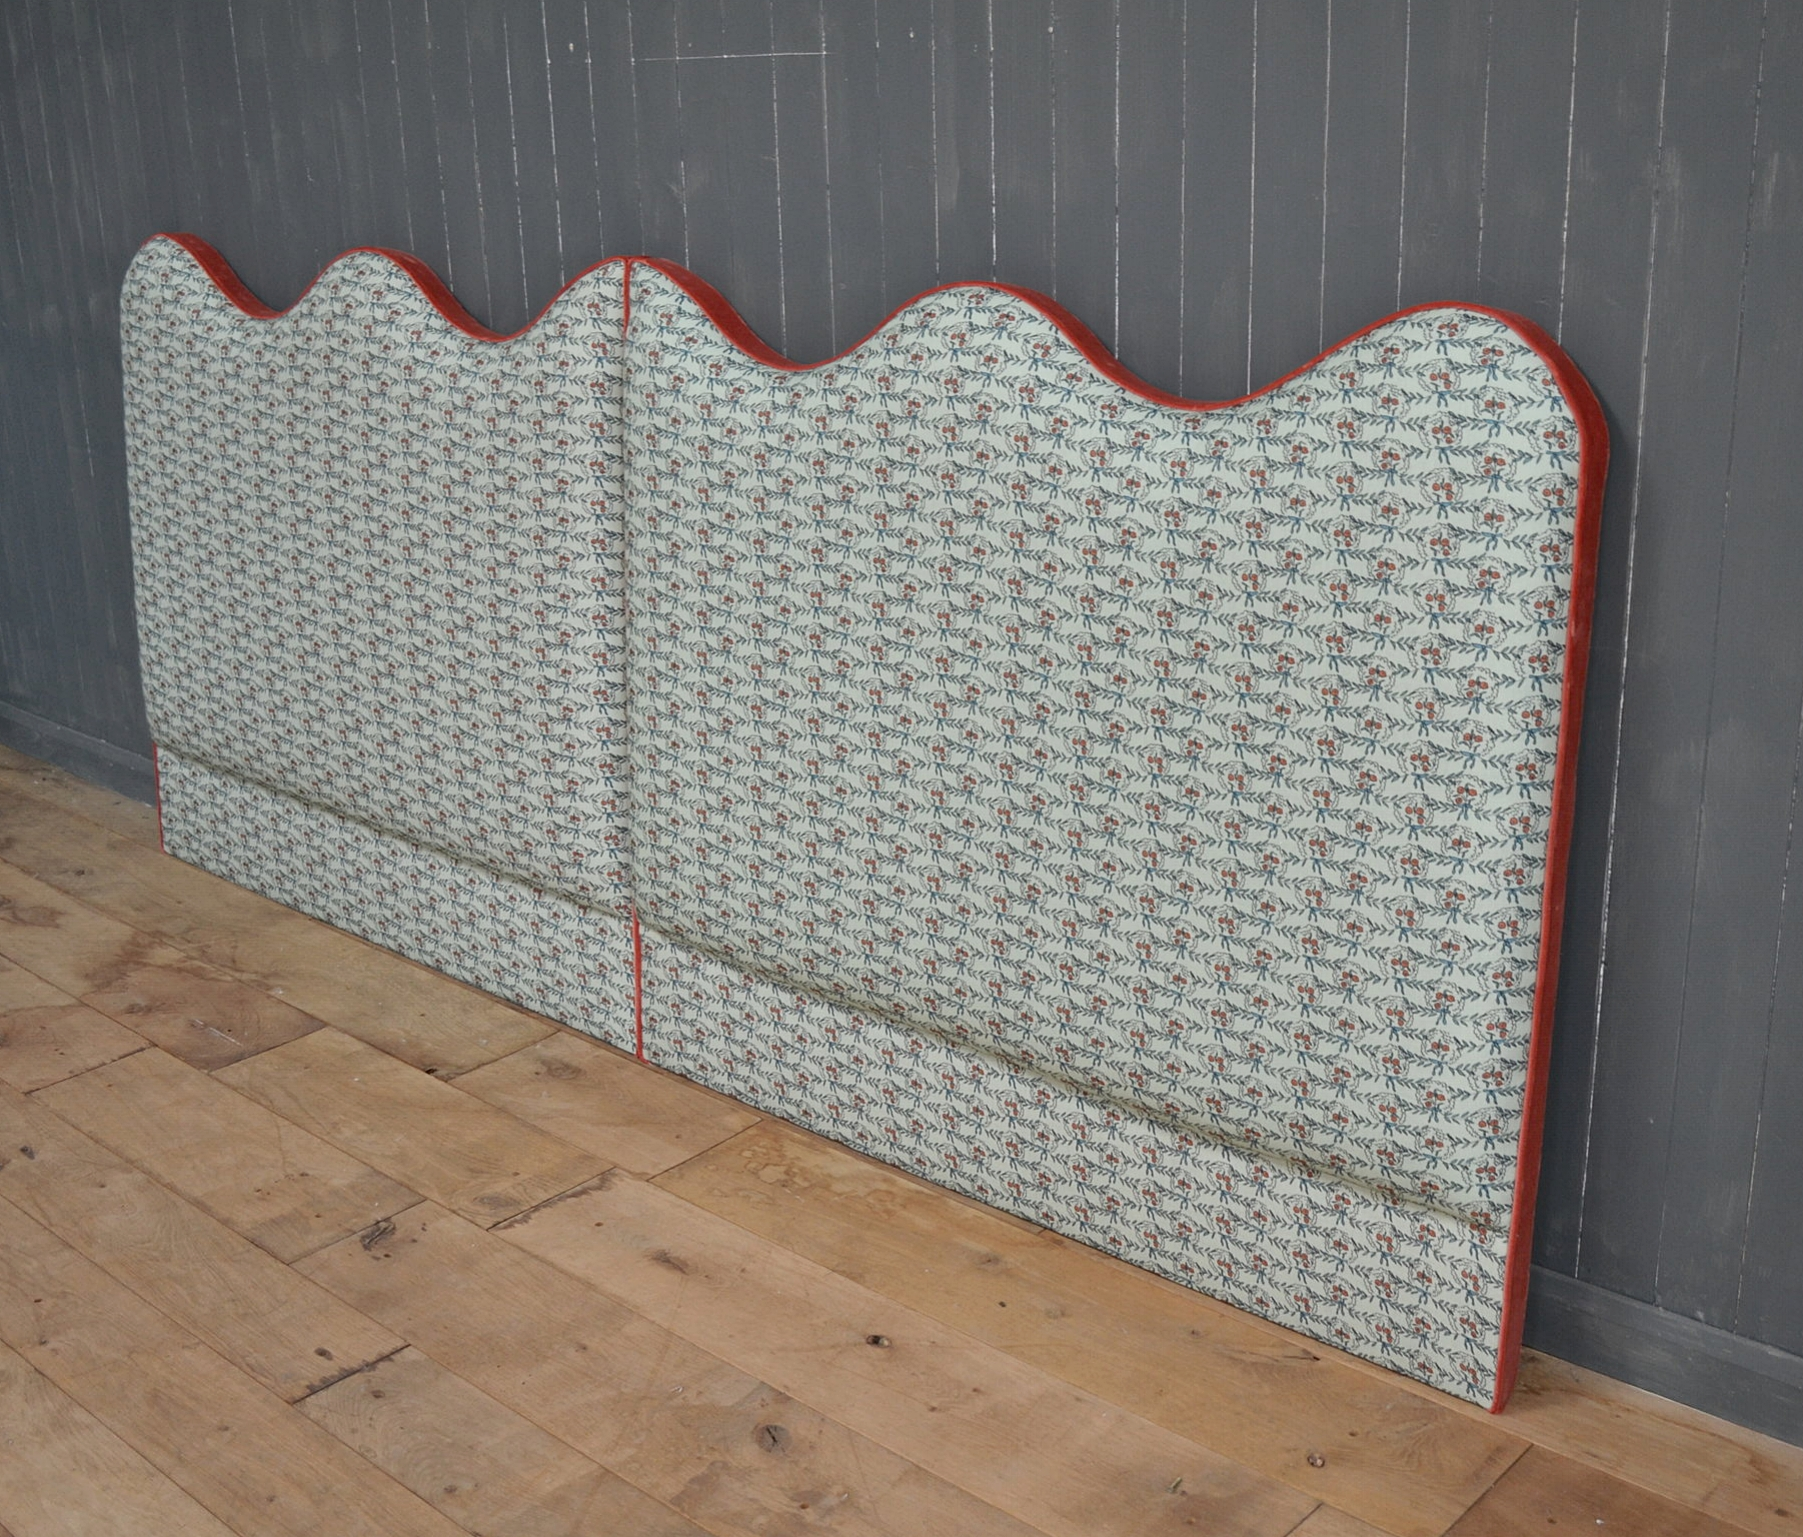 Bespoke - twin headboards with contrast edges